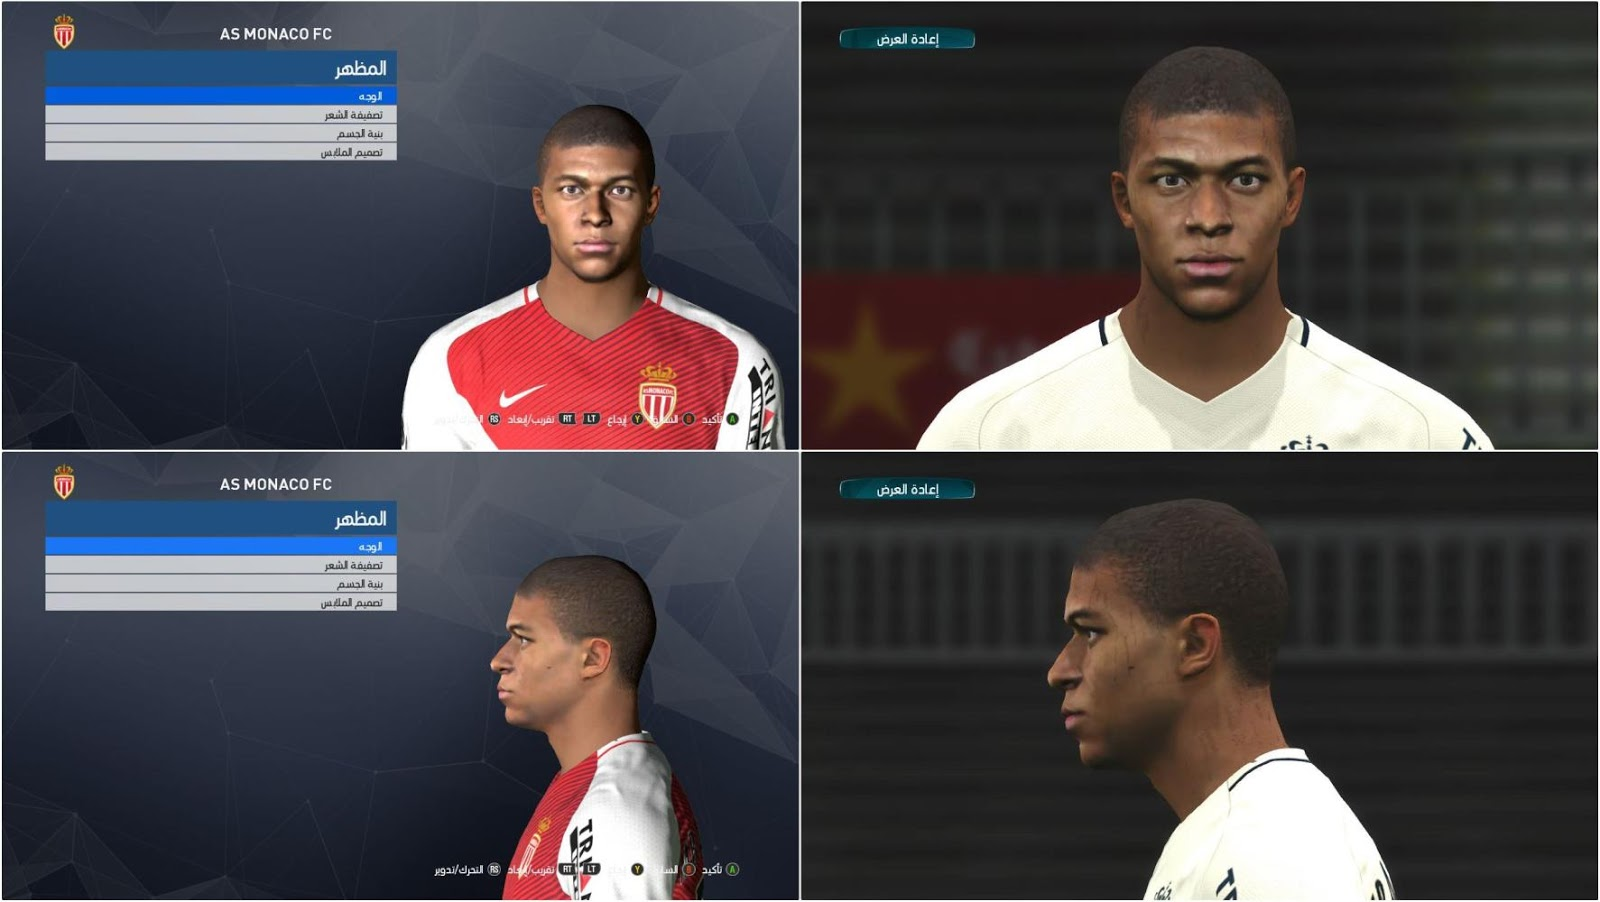 PES 2017 Kylian Mbappé Face By Abdo Mohamed Facemaker